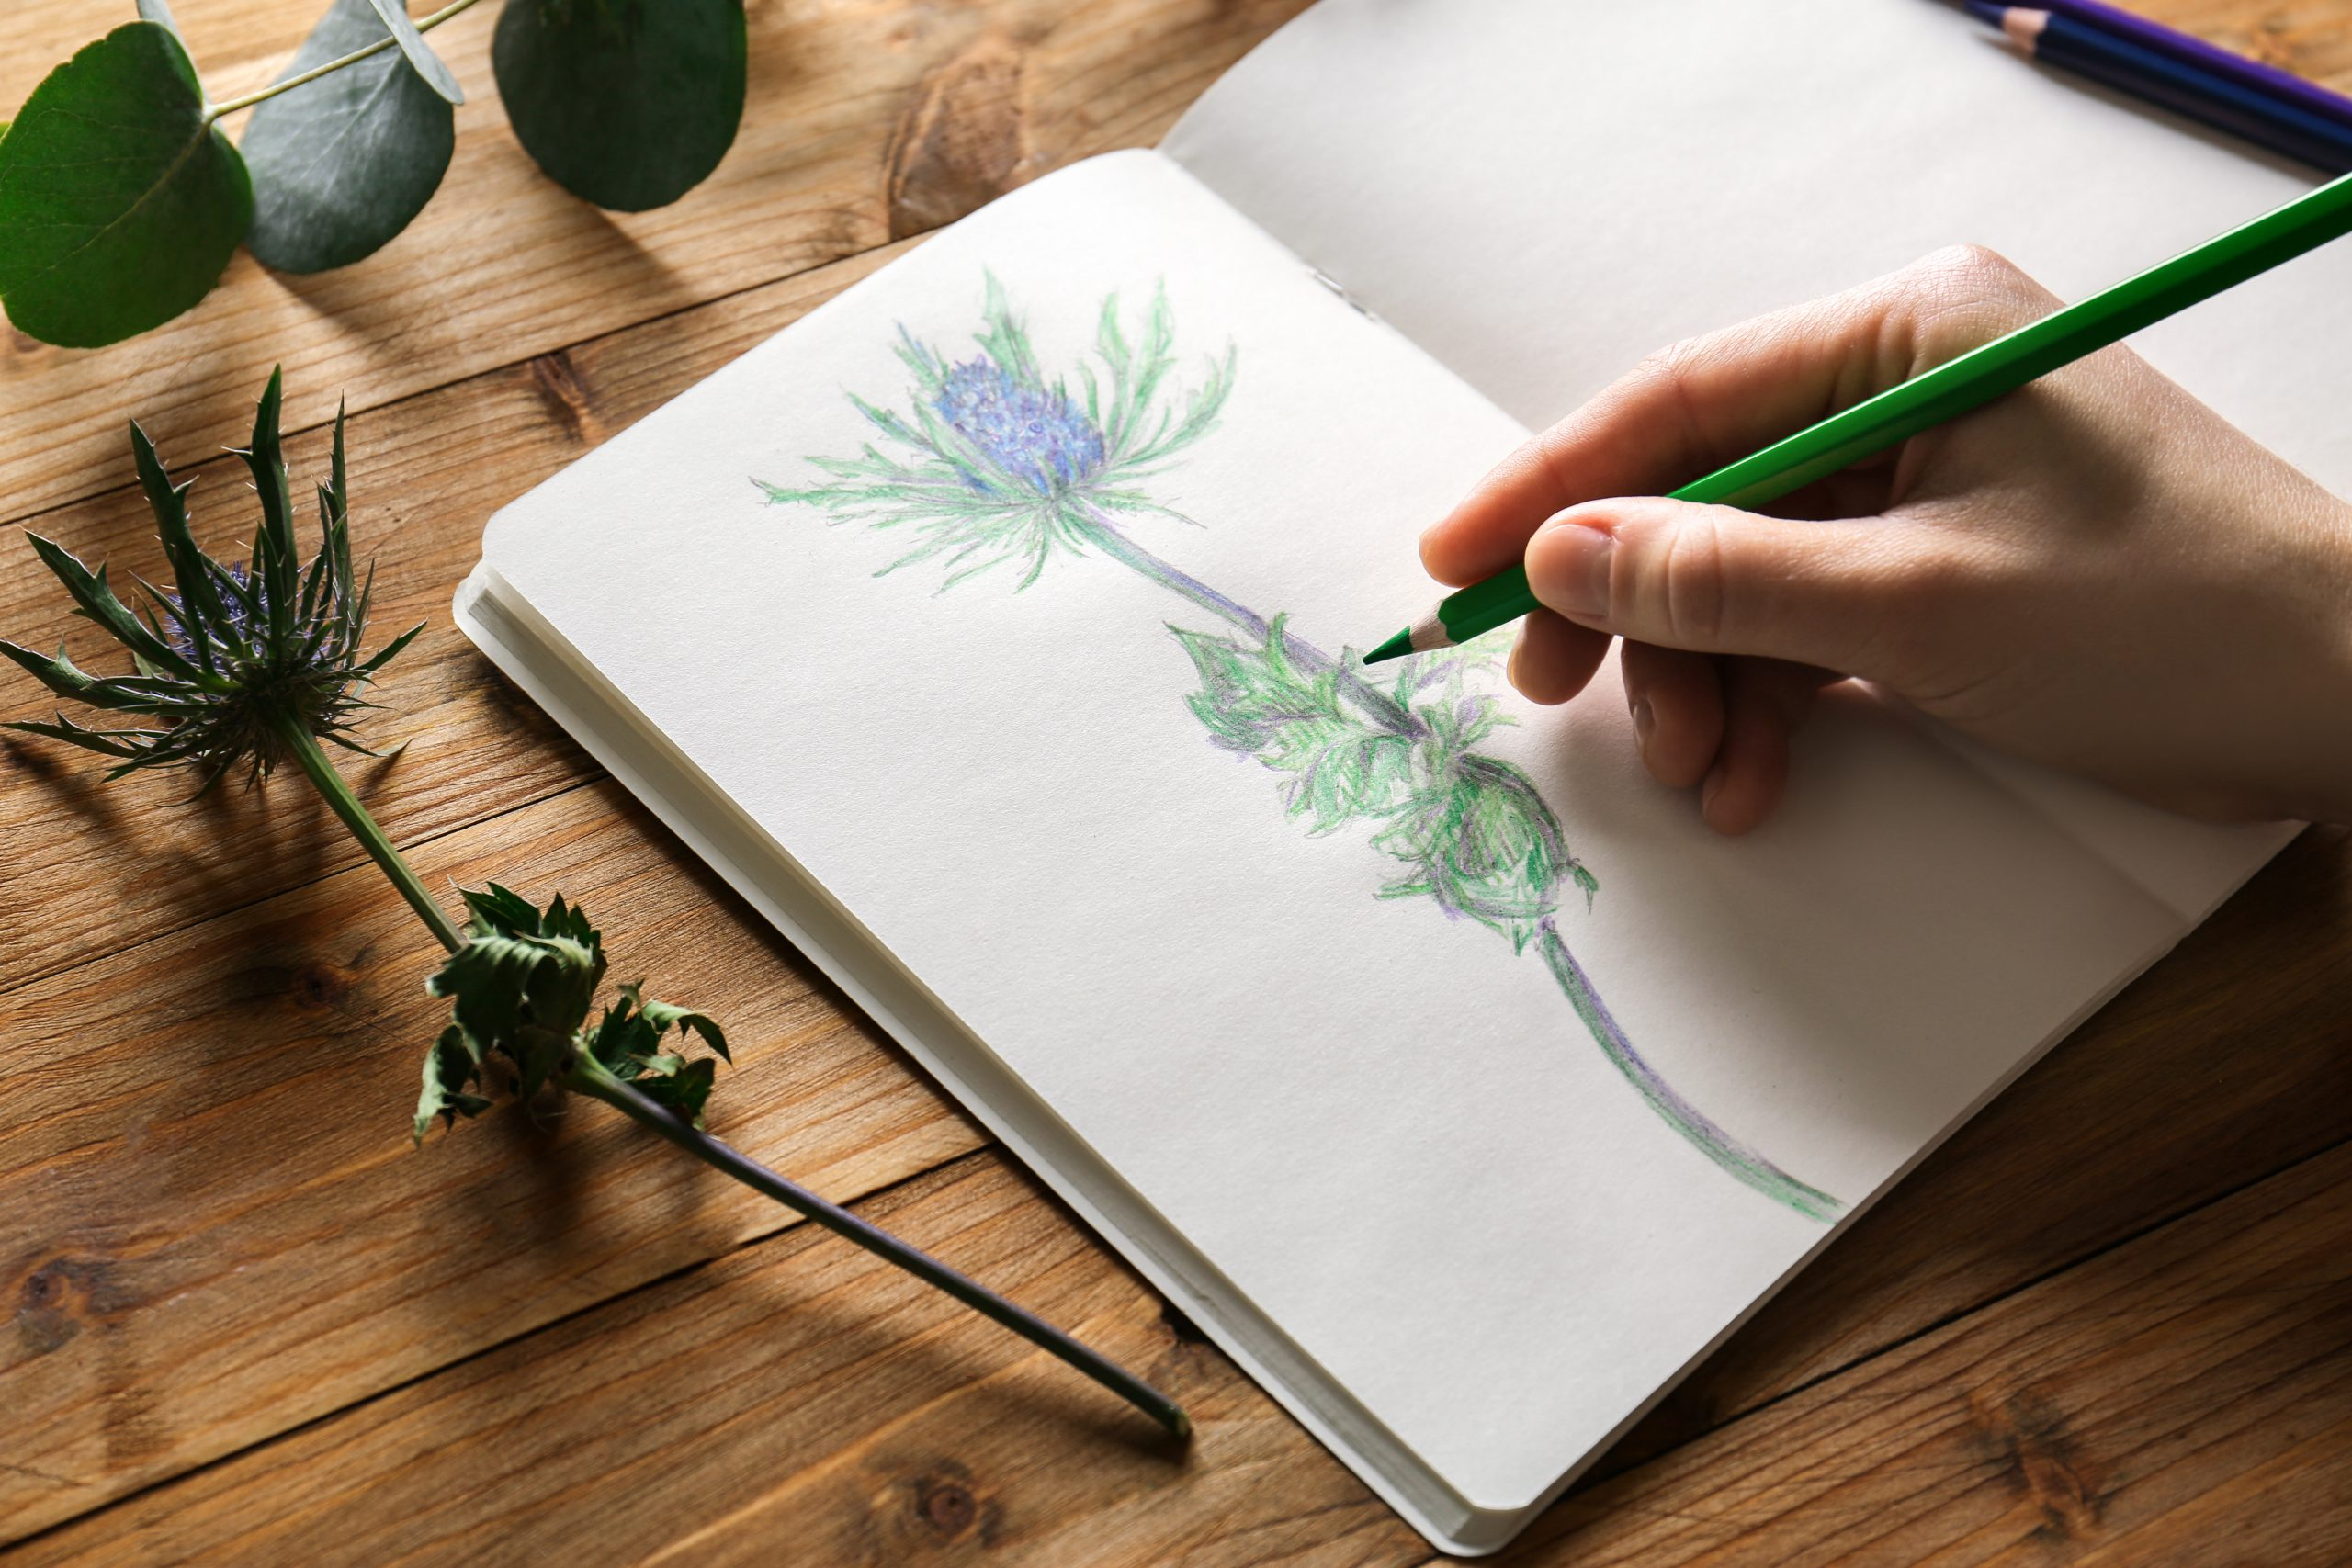 How to Keep Pencil Sketches From Smudging in a Sketchbook